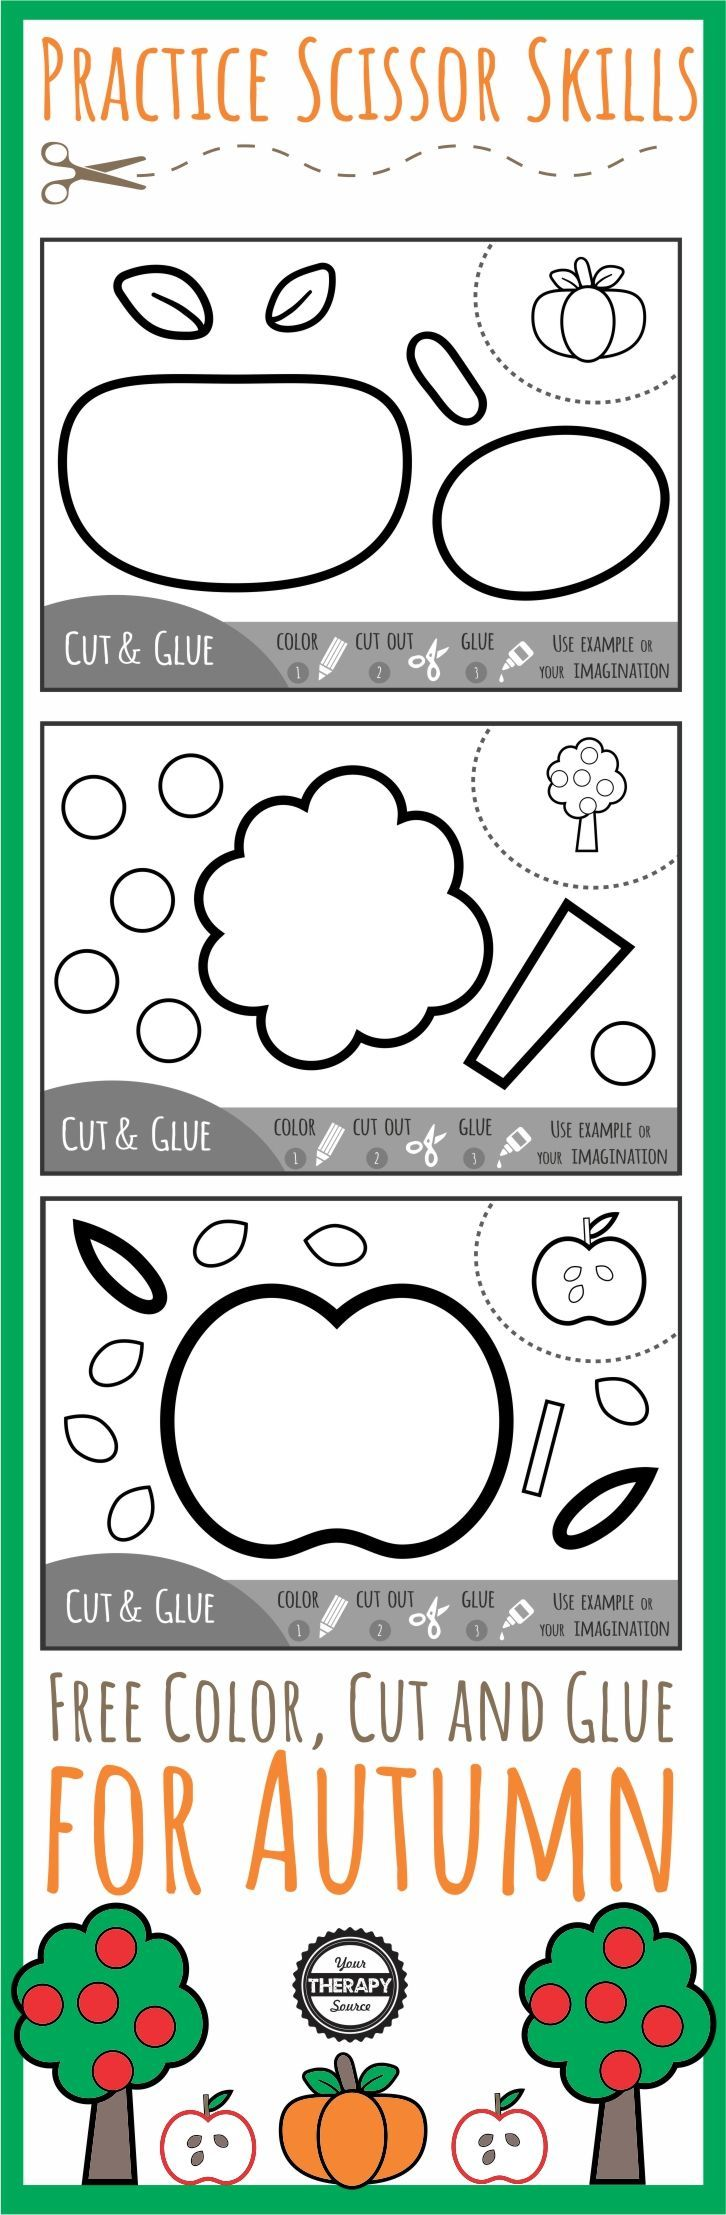 Color Cut Glue Scissor Practice for Fall - three FREE black and white  printables to practice